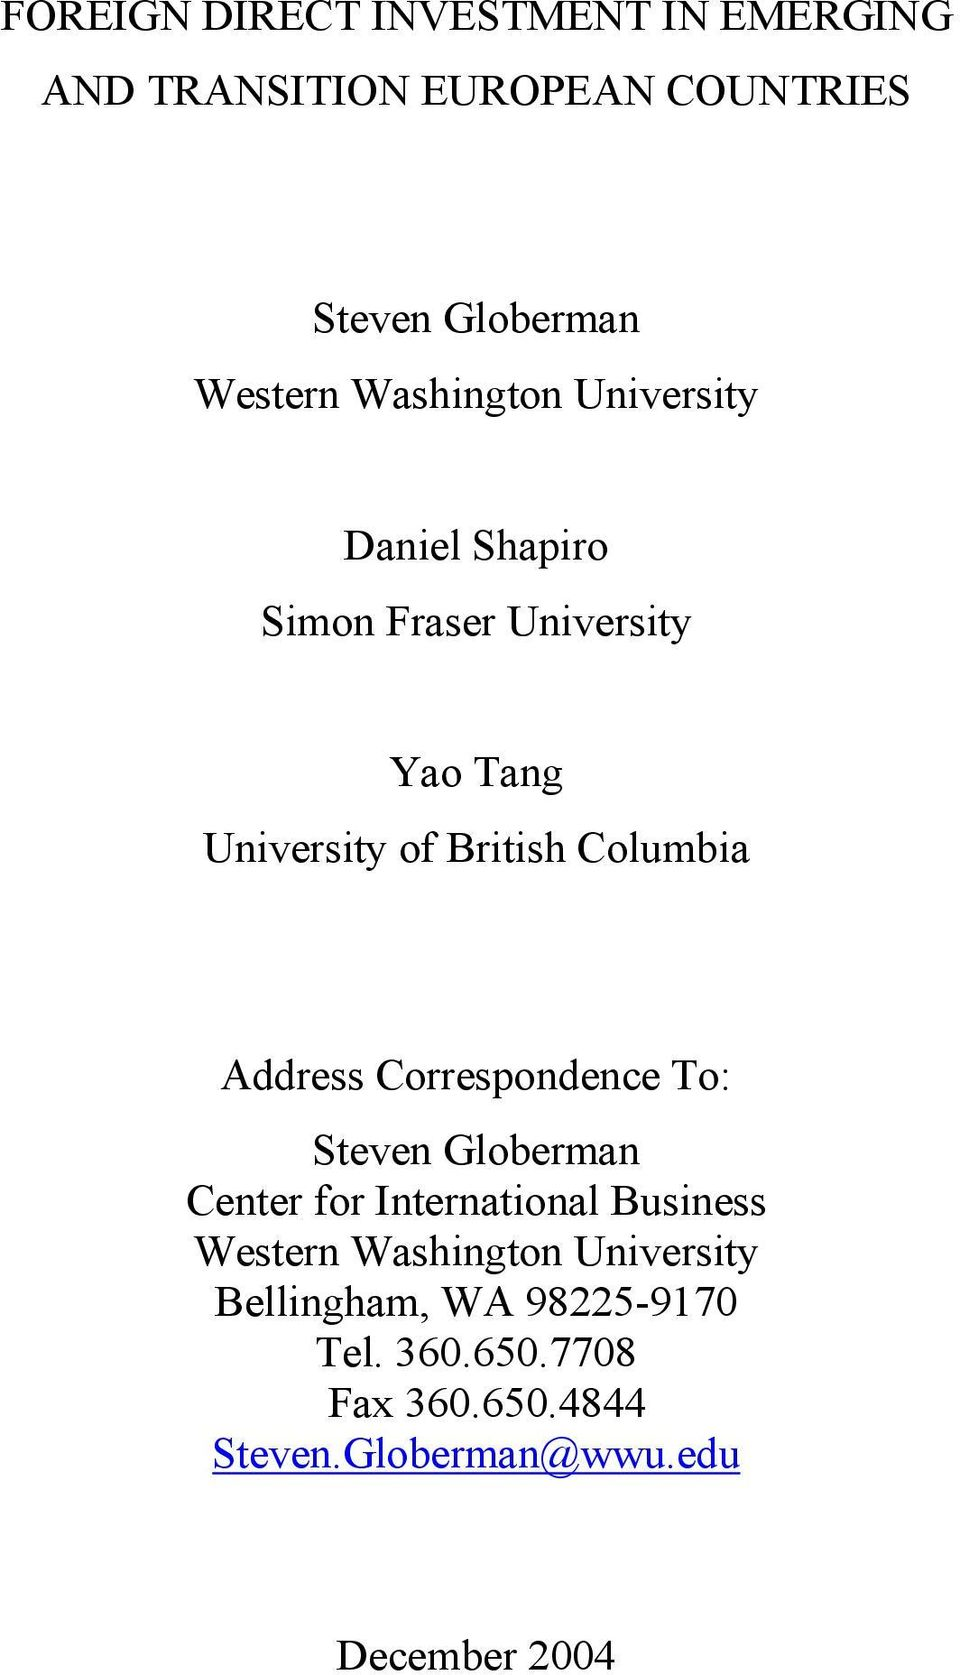 Address Correspondence To: Steven Globerman Center for International Business Western Washington